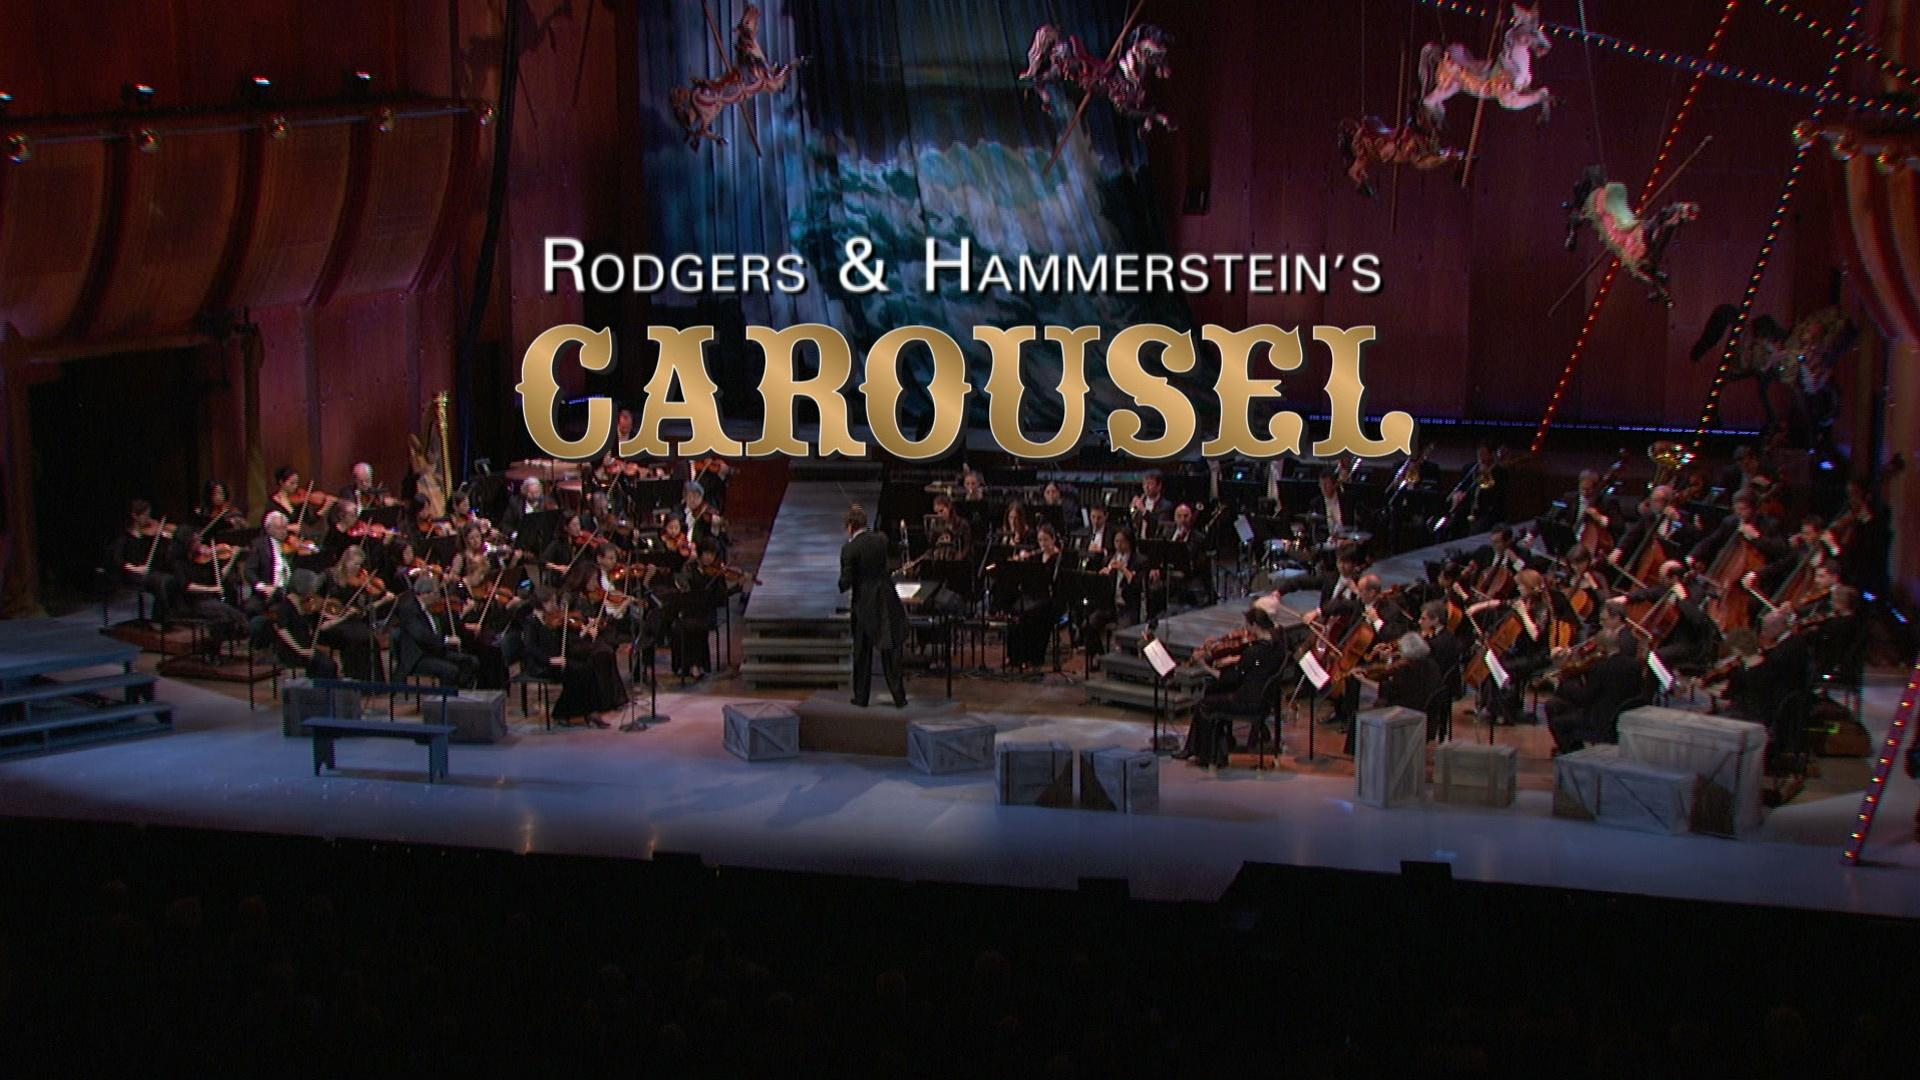 Rodgers & Hammerstein's Carousel: 3 Nominations